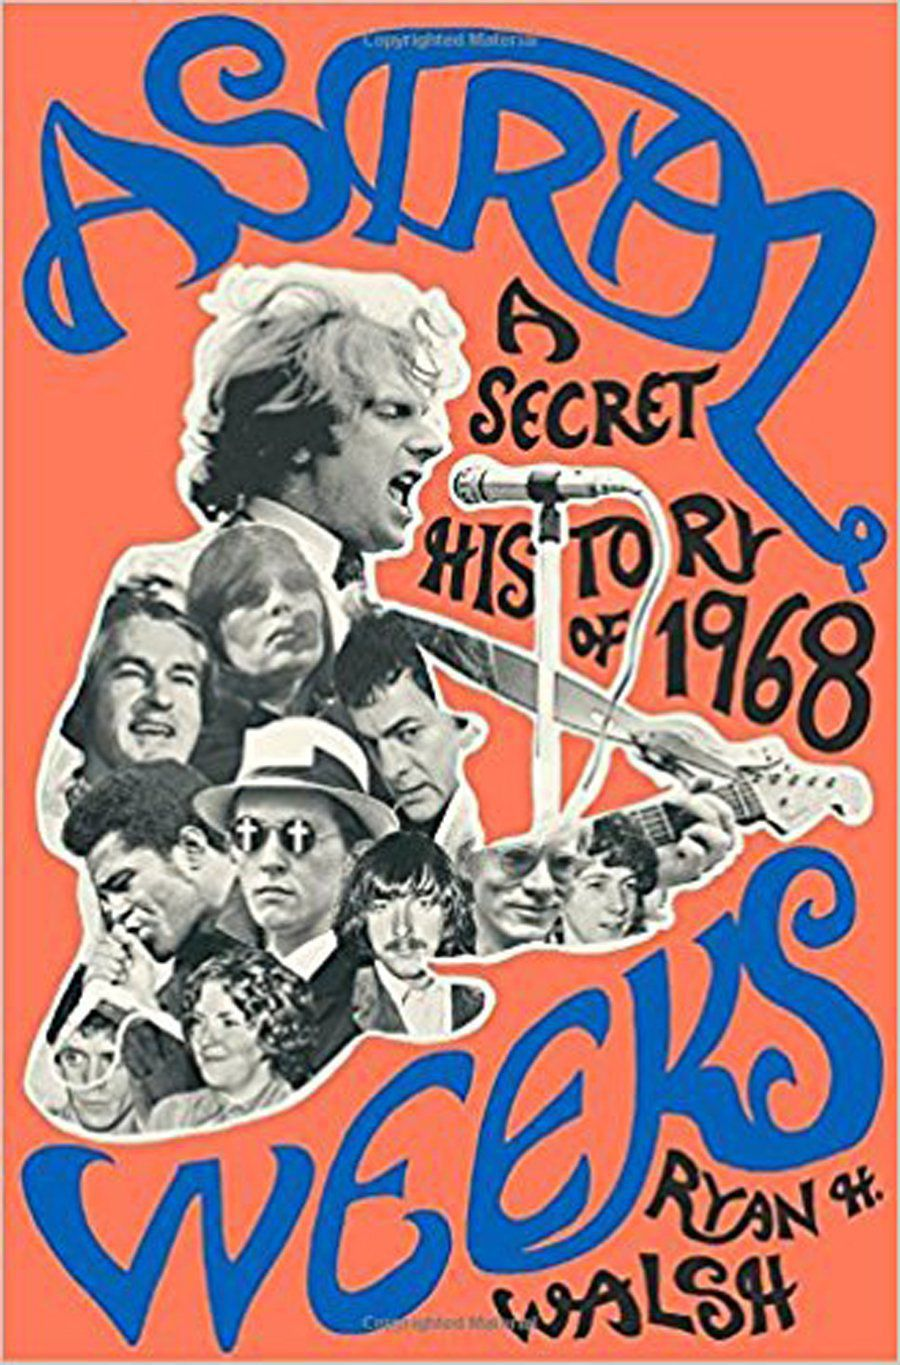 "Astral Weeks: A Secret History of 1968  by Ryan H. Walsh   Friday, March 23 - Washington D.C .  @ Right Proper Brewery  (their ""Astral Weeks"" brew on tap all night!)  Co-Hosted by Washington Post editor David Malitz Time: 7PM - 9PM - FREE -   RSVP  920 Girard St NE, Washington, DC, 2001"